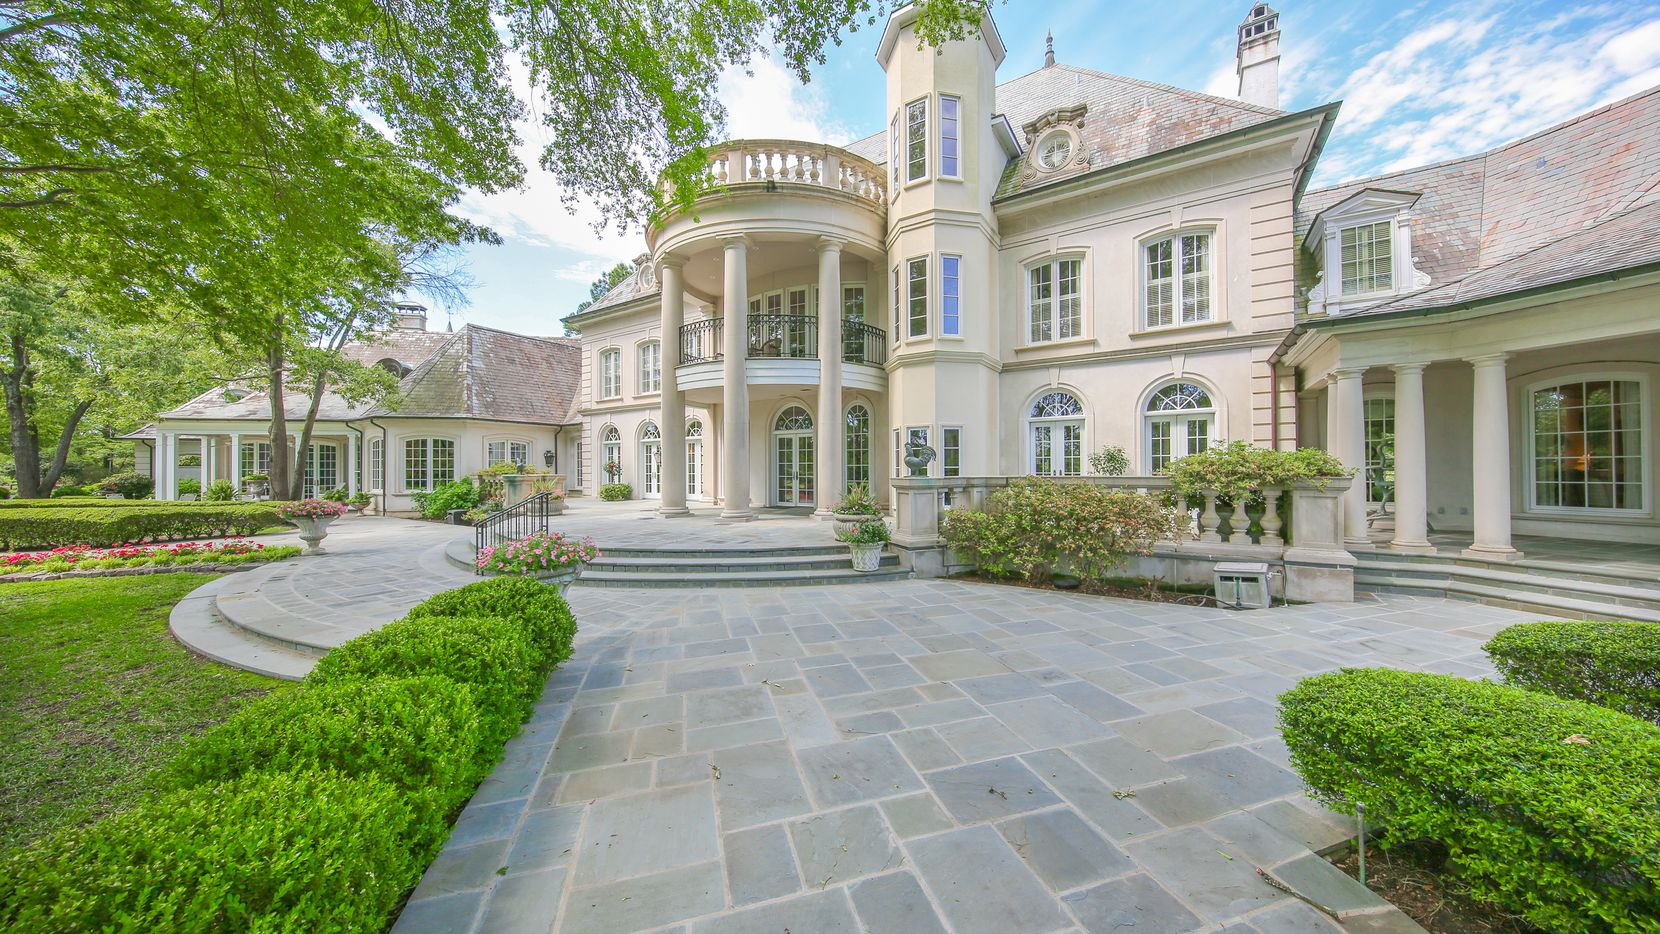 """The Pilgrim estate, known locally as """"Cluckingham Palace,"""" covers 43 acres and has an 18,000-square-foot French Renaissance-style mansion, six bedrooms and 10 and a half baths."""